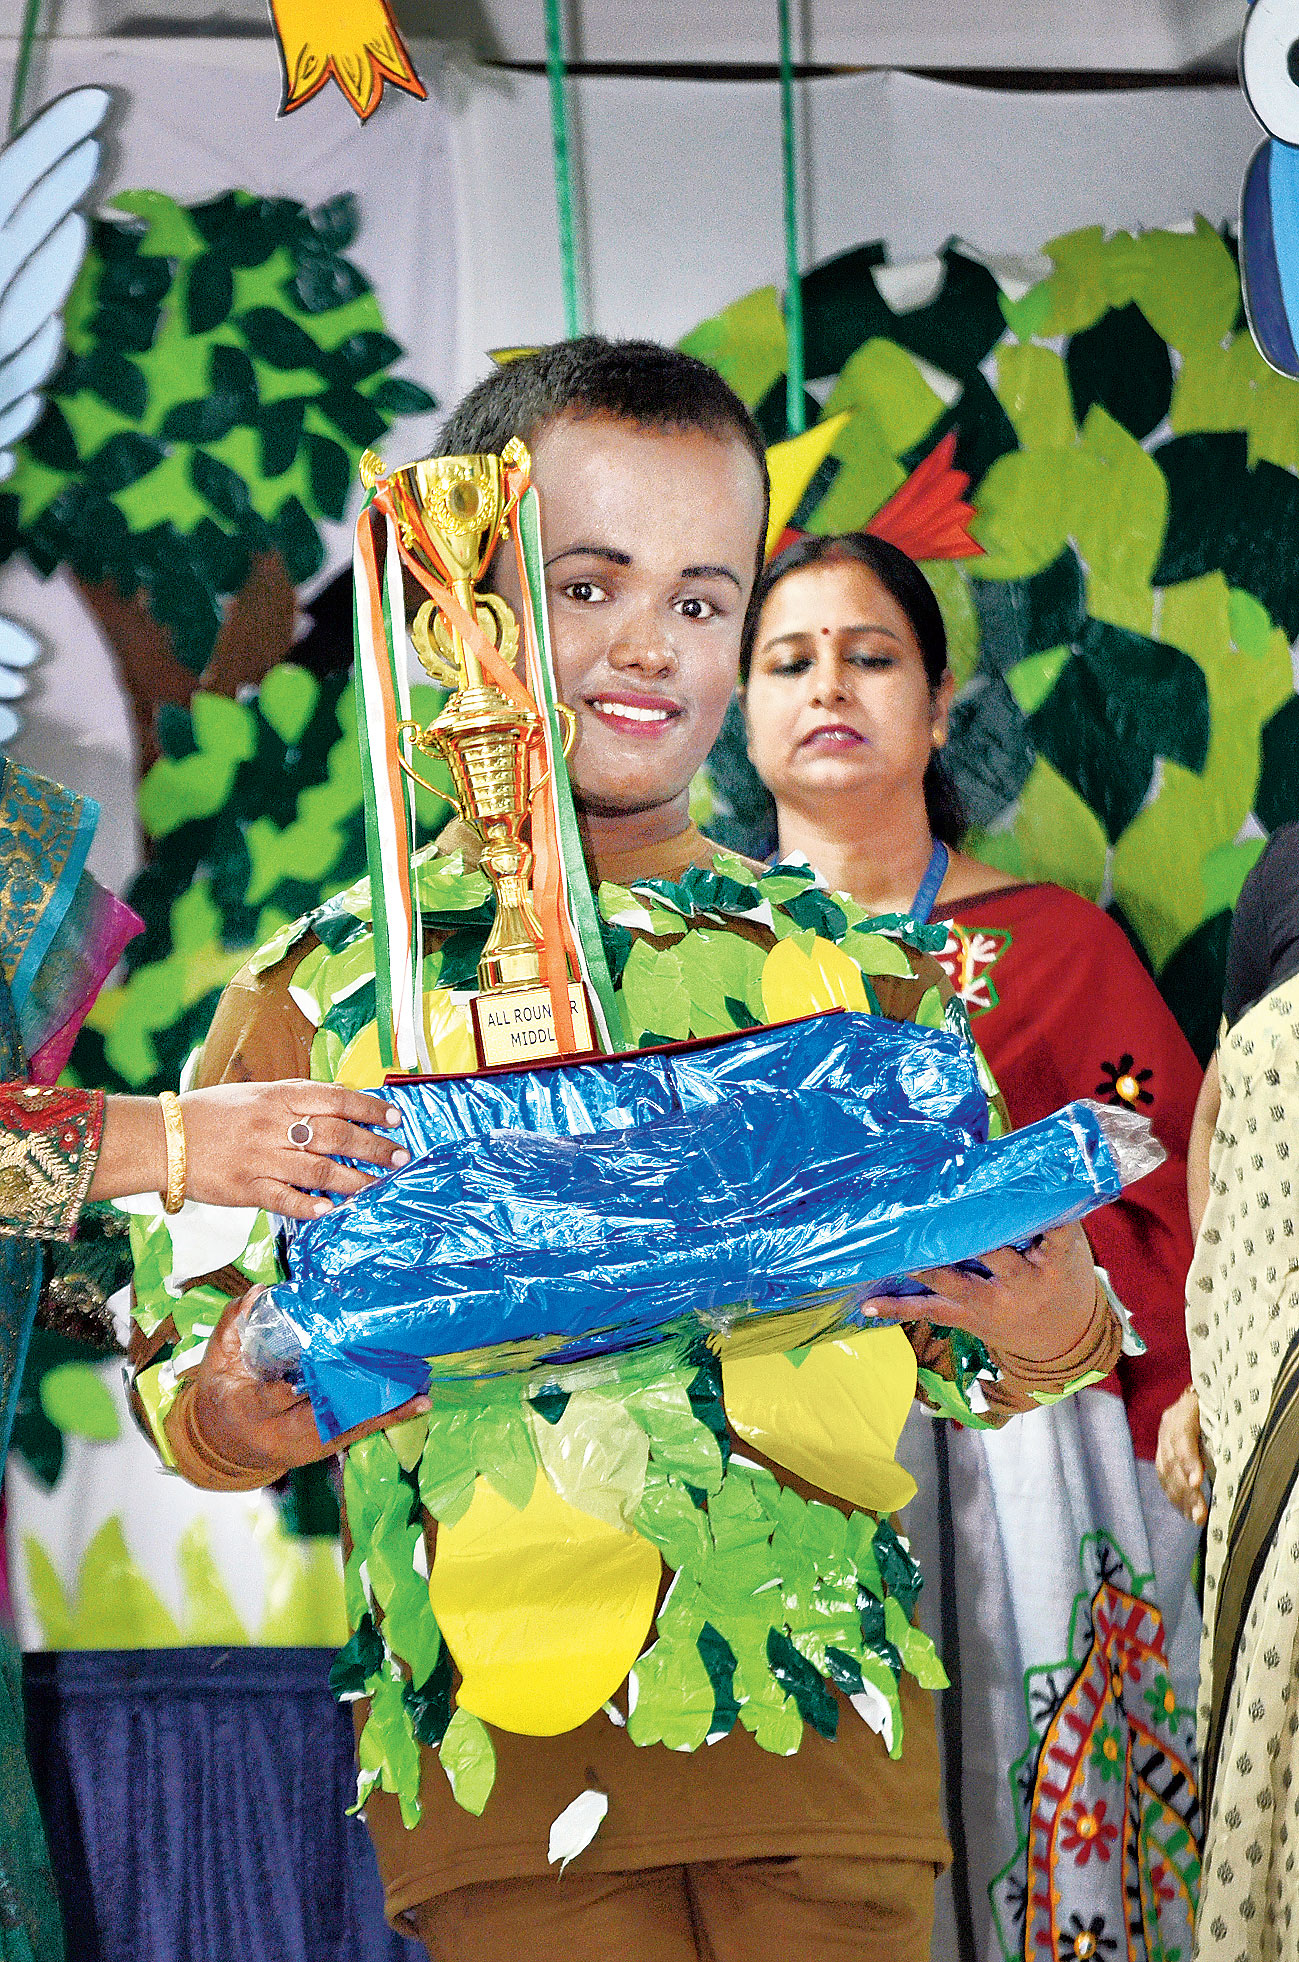 Bittu Sen is a drummer, a member of the school band, an active participant in cultural programmes, a keen student and a leader in child advocacy programmes. He got the middle school all-rounder's award.